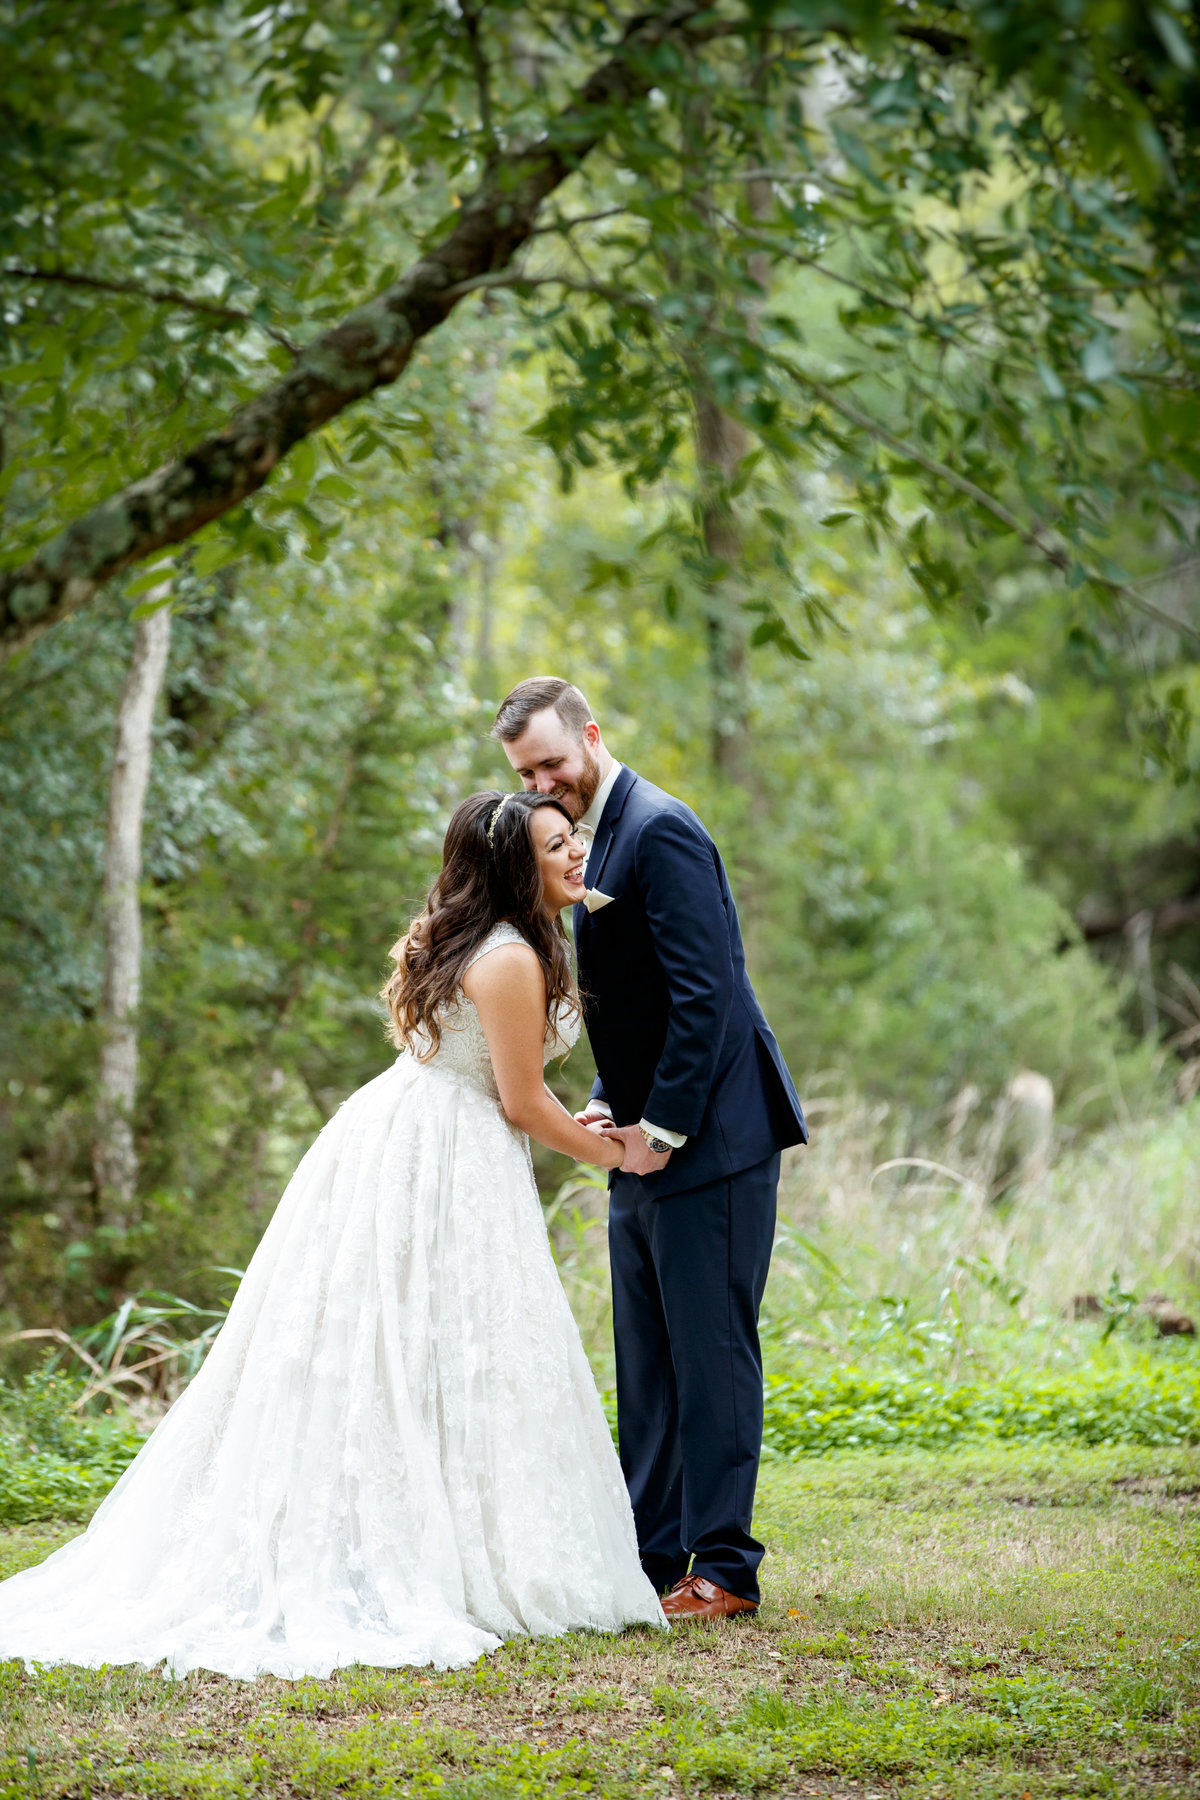 Austin wedding photographer texas old town wedding photographer bride groom laughing